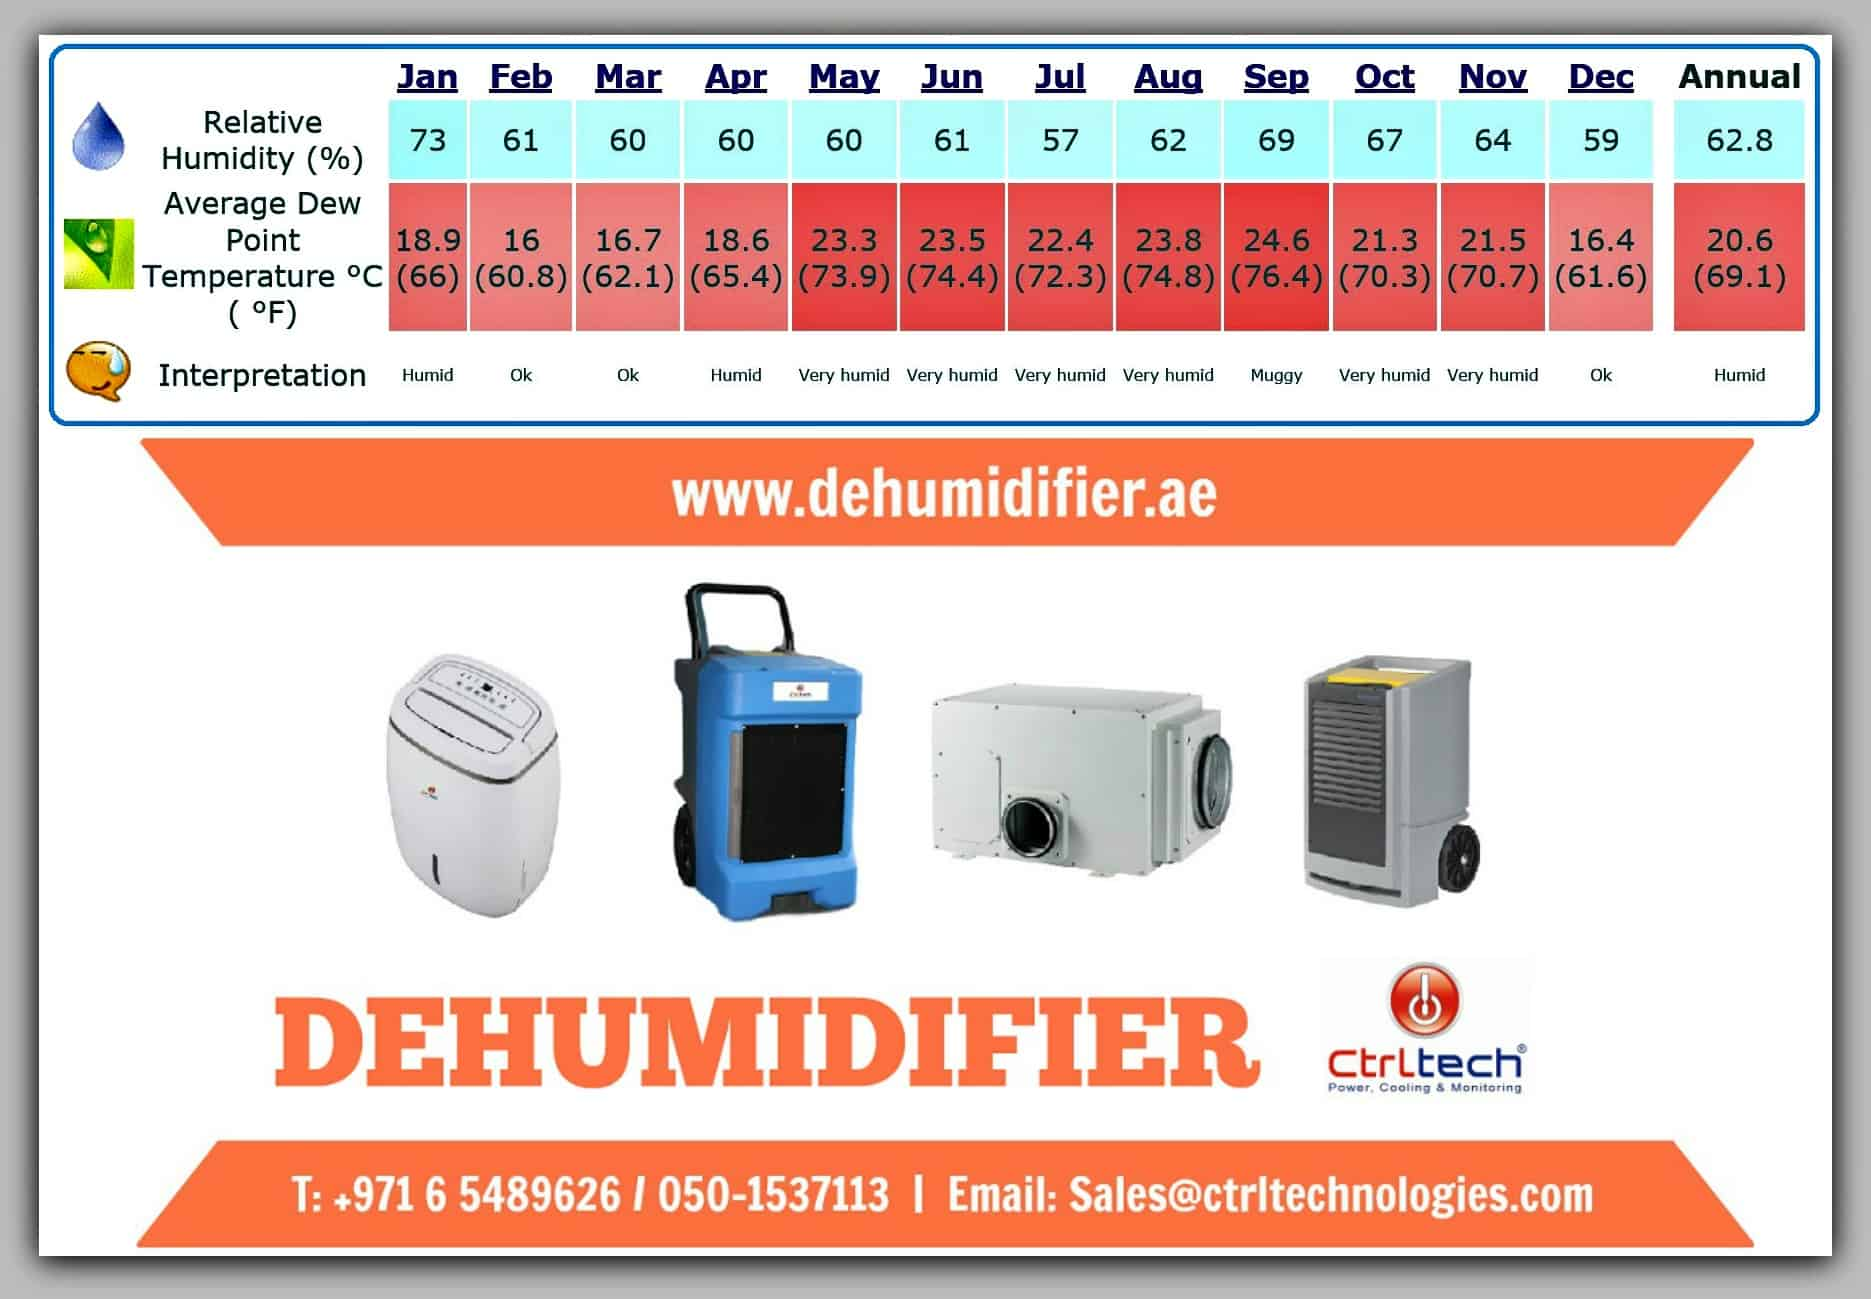 Industrial Dehumidifier in Saudi Arabia Jeddah and Riyadh.